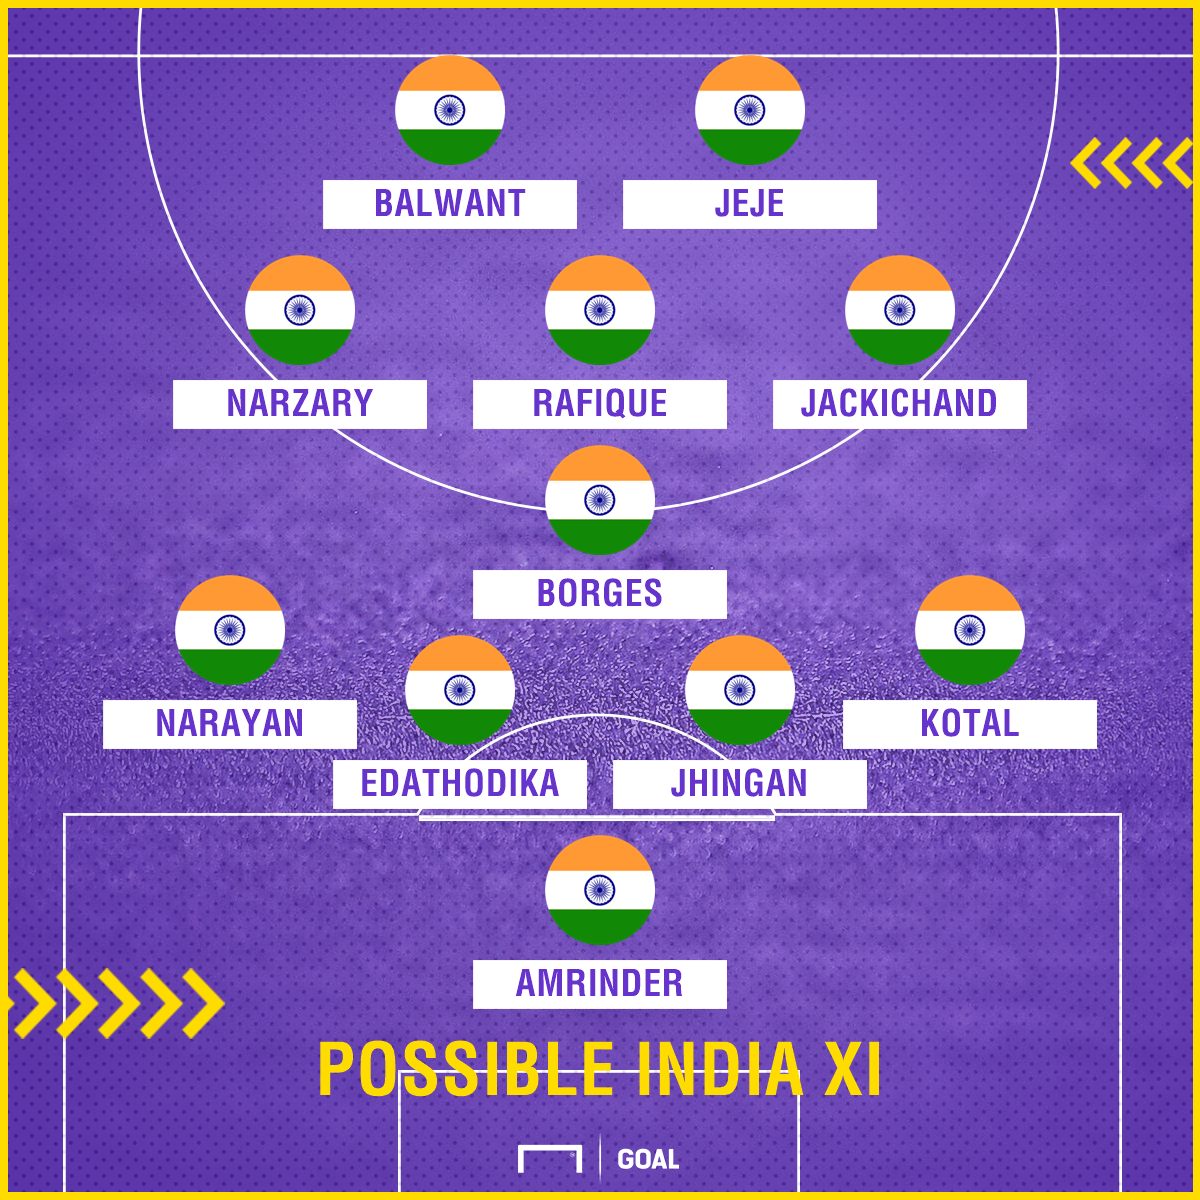 Possible India XI